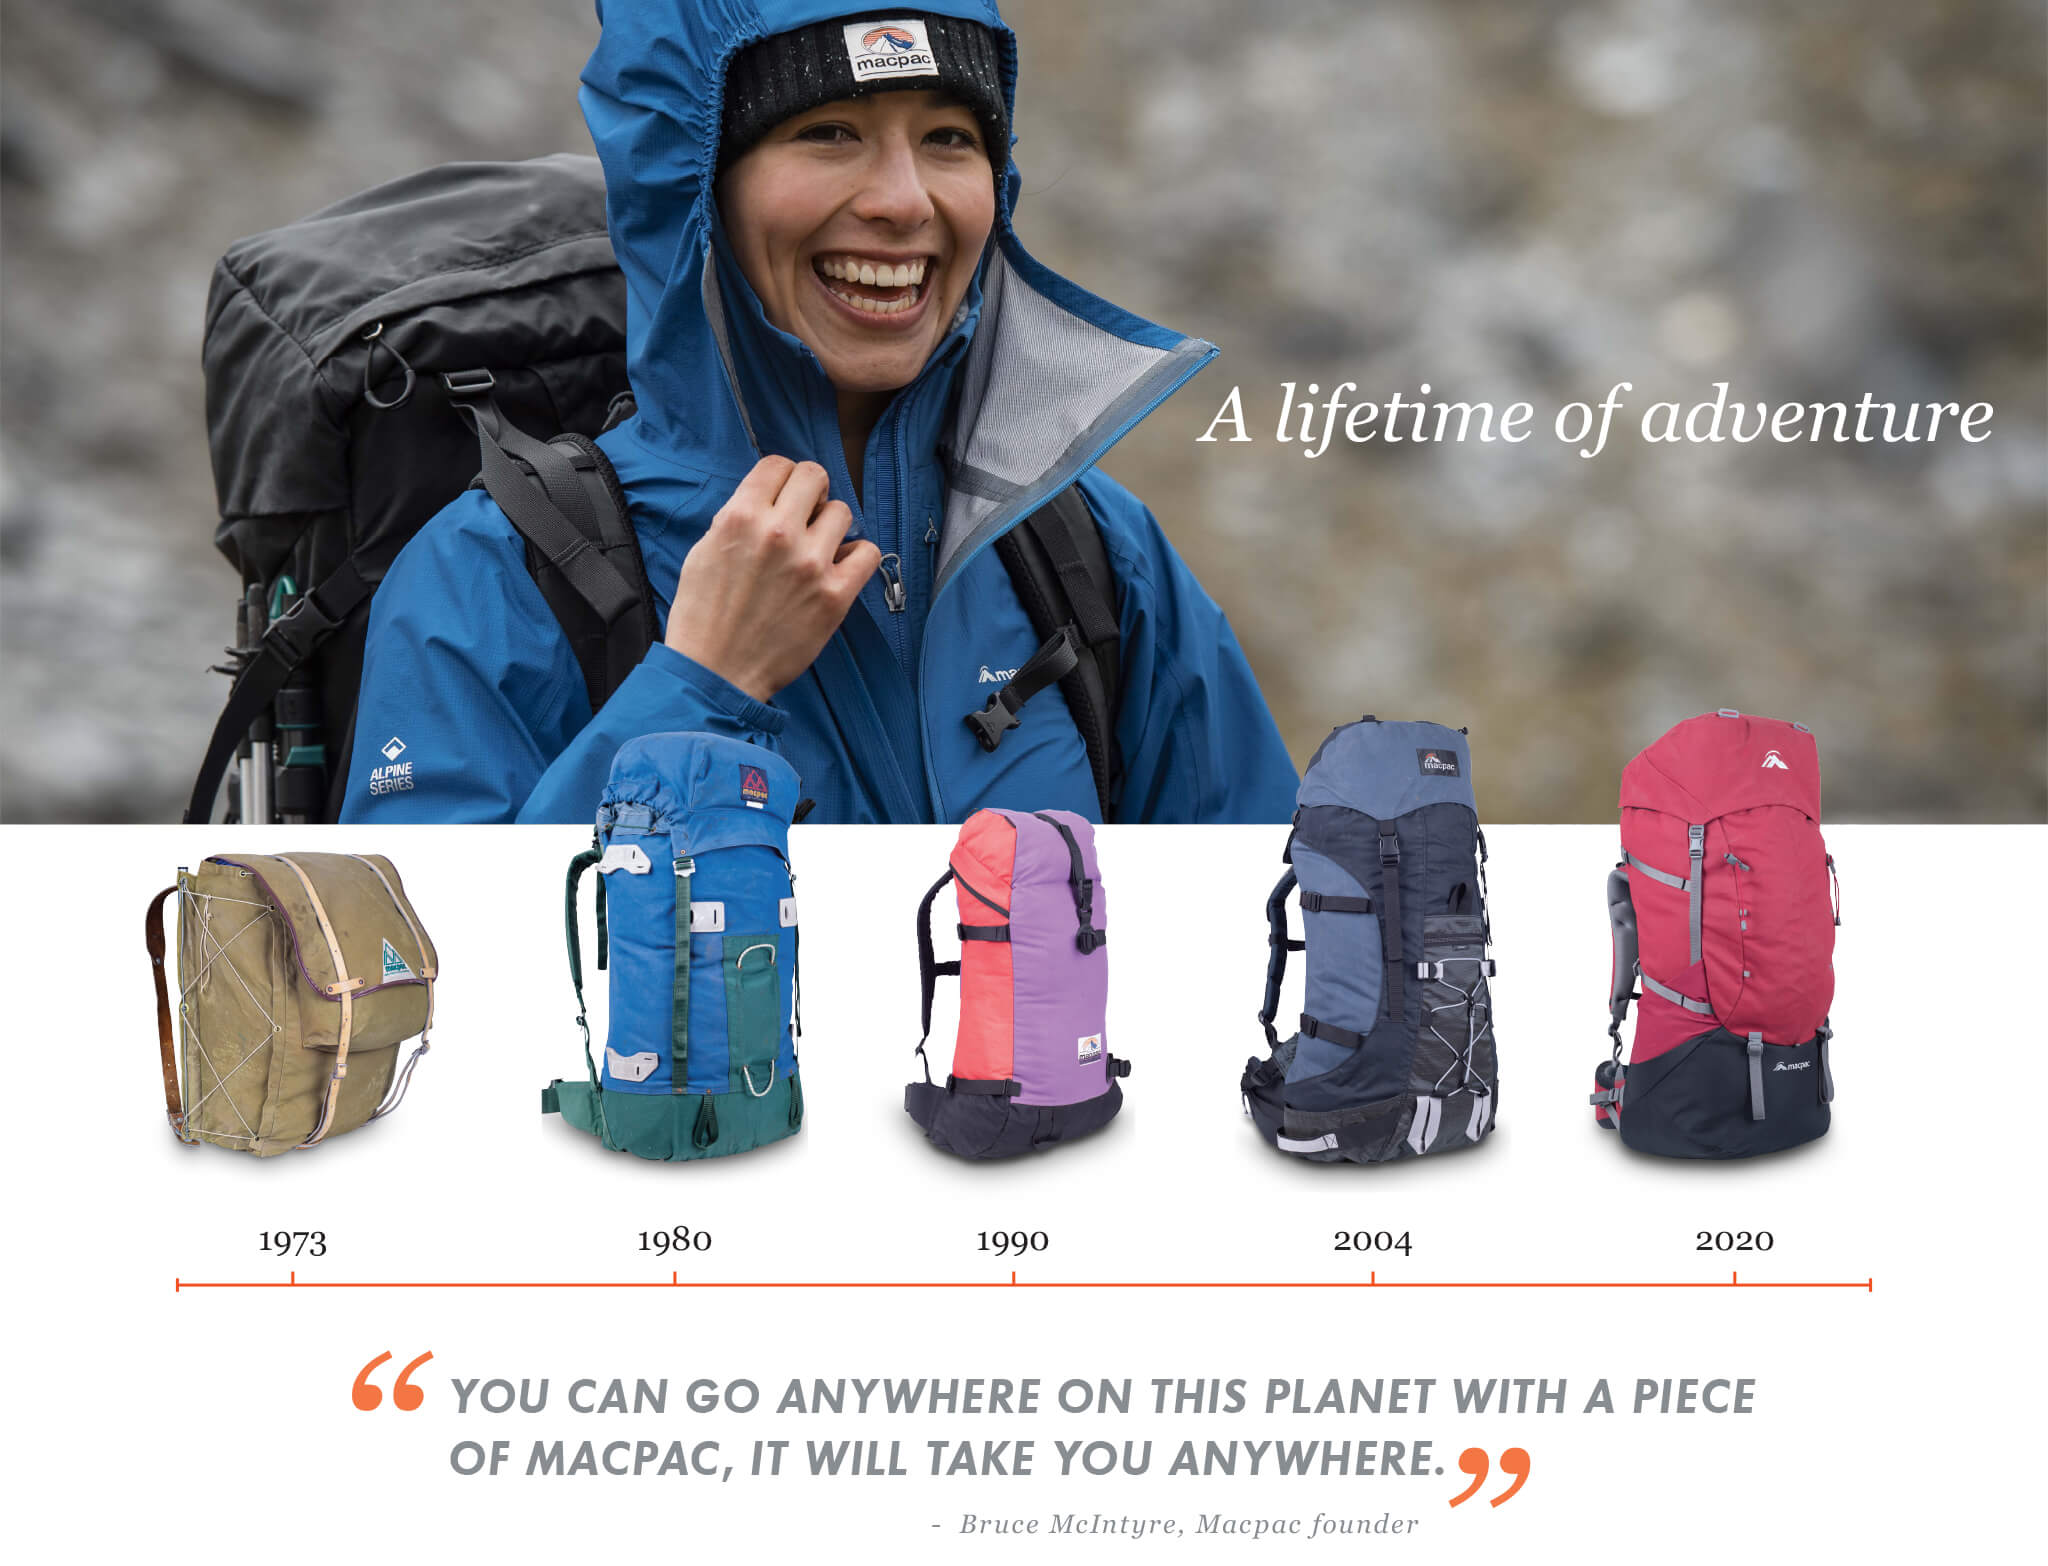 A lifetime of adventure with Quote: My goal was to make the best backpacks for New Zealand's Mountains - Bruce McIntyre, Macpac founder